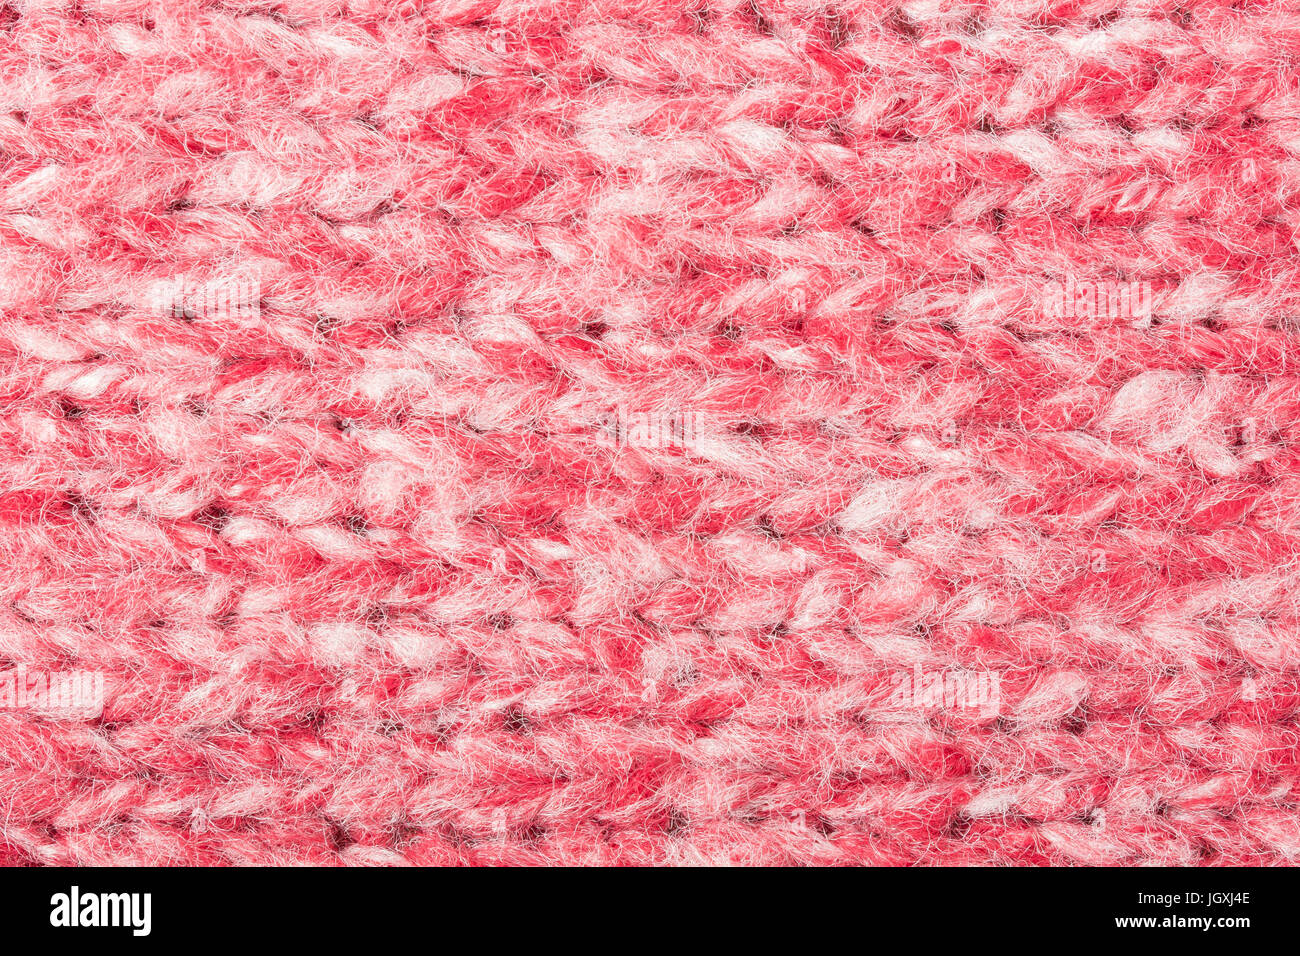 Red and white knitting fabric texture background or knitted pattern ...